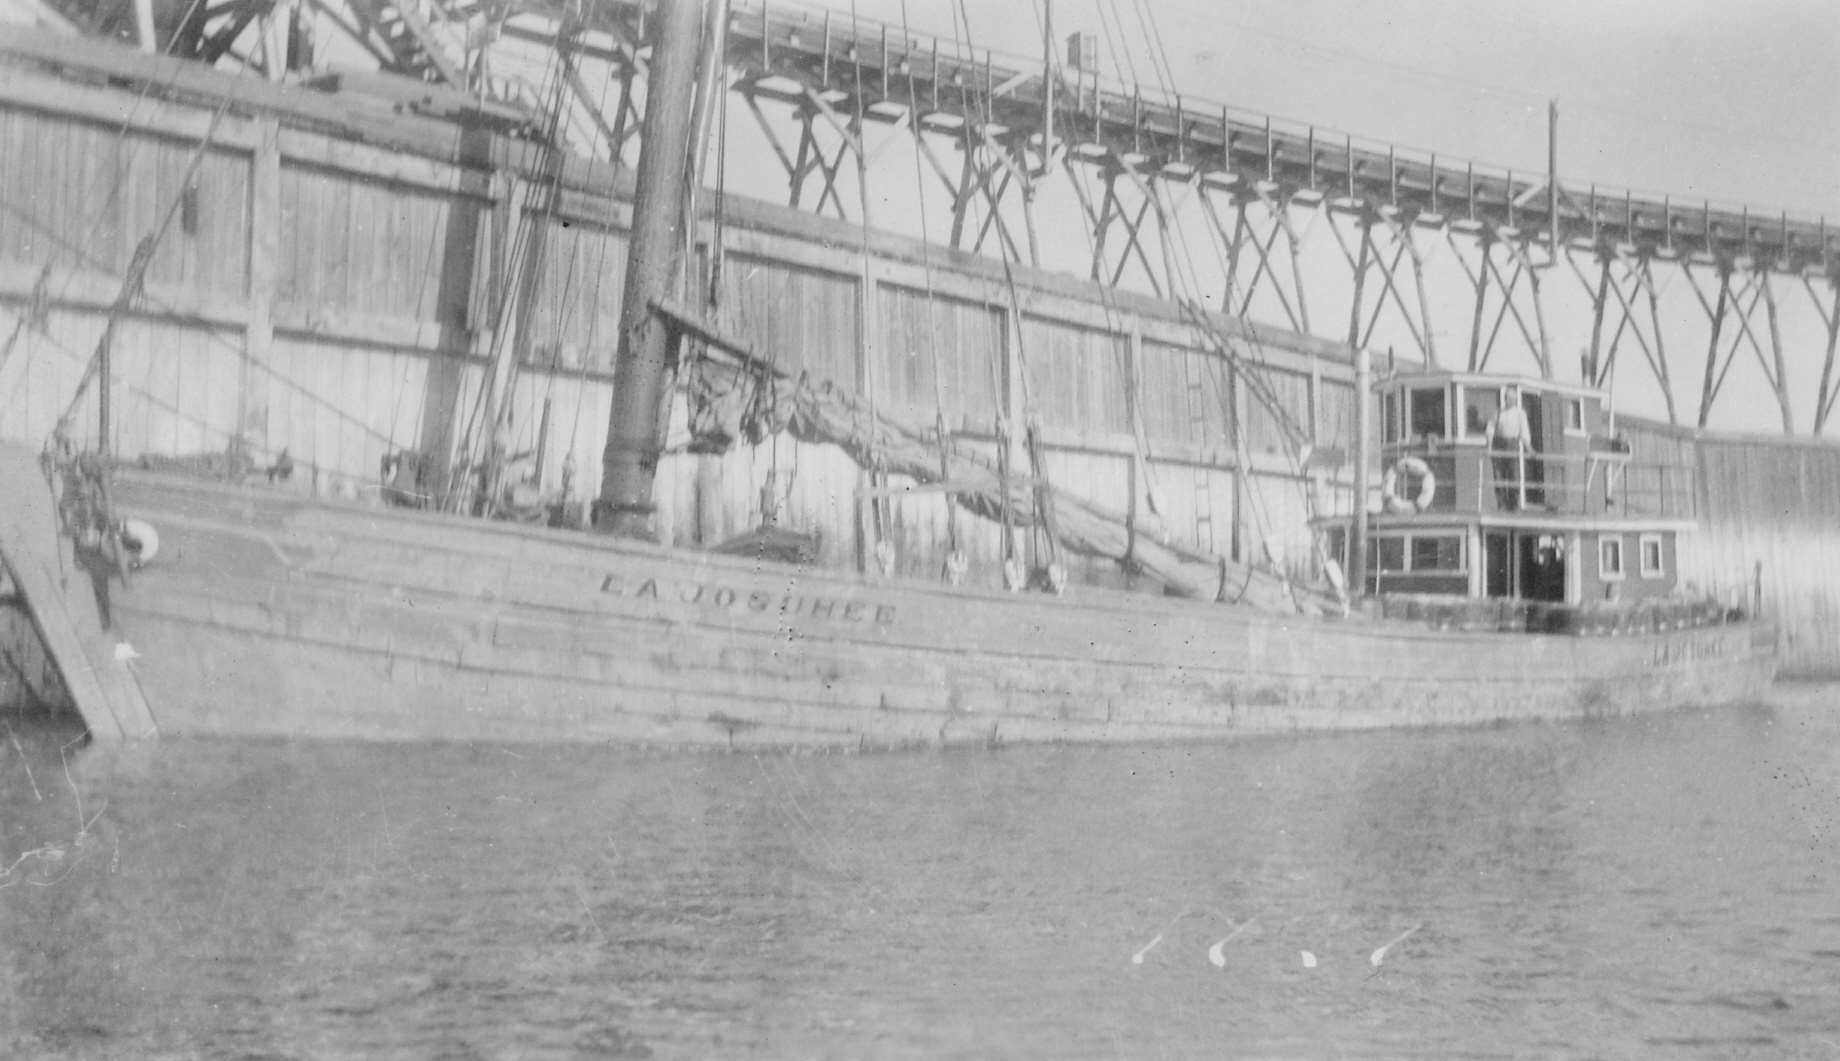 An old black and white photograph of the Josuhée. The wooden ship has its sail lowered, with its name clearly visible. At the back, Captain Joseph Desgagnés is standing proudly outside his cabin. There is a wooden dock in the background.